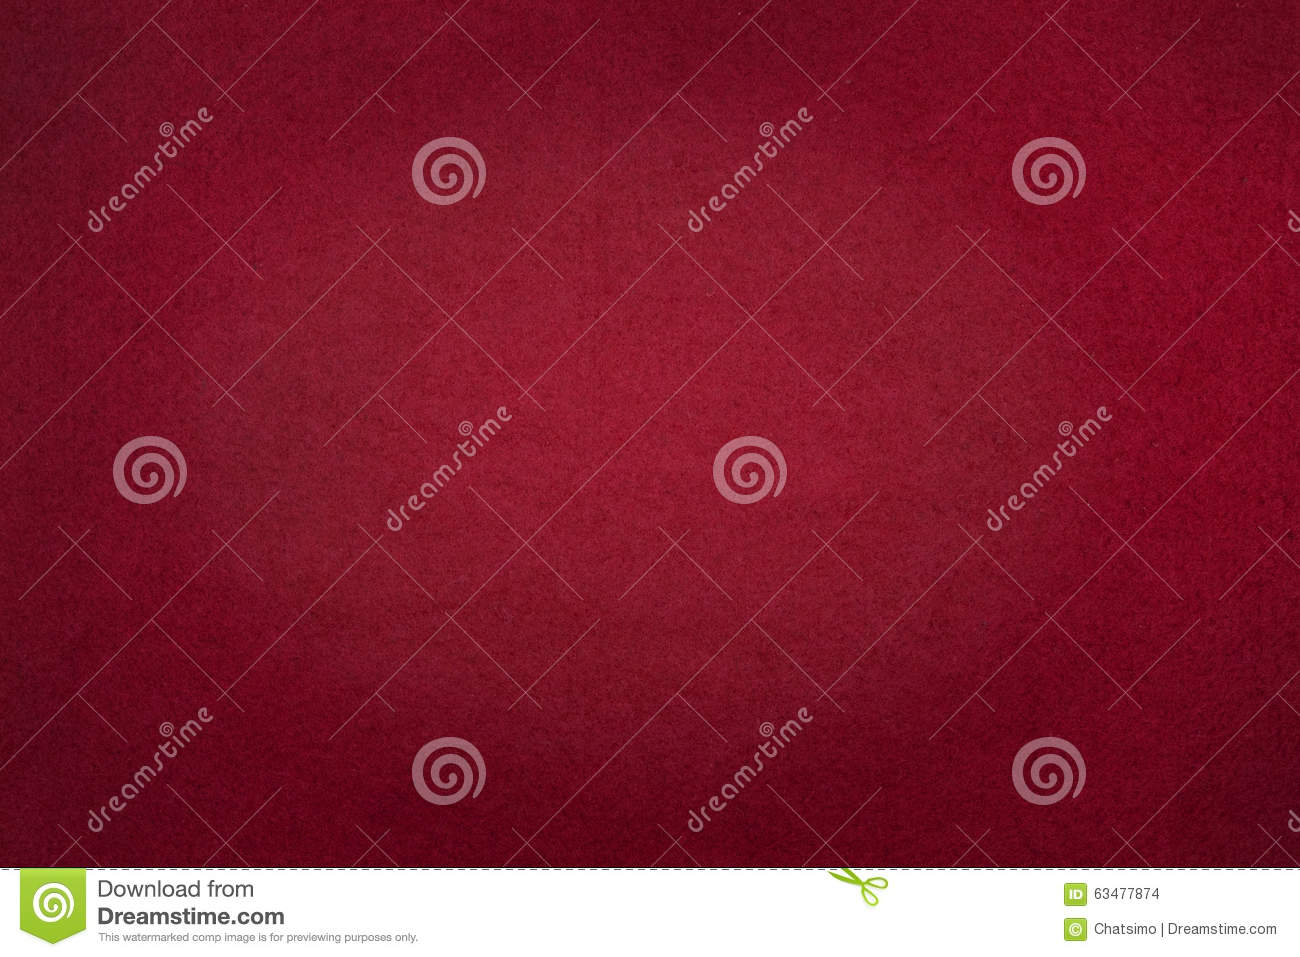 Poker table background - Poker Table Felt Background In Red Color